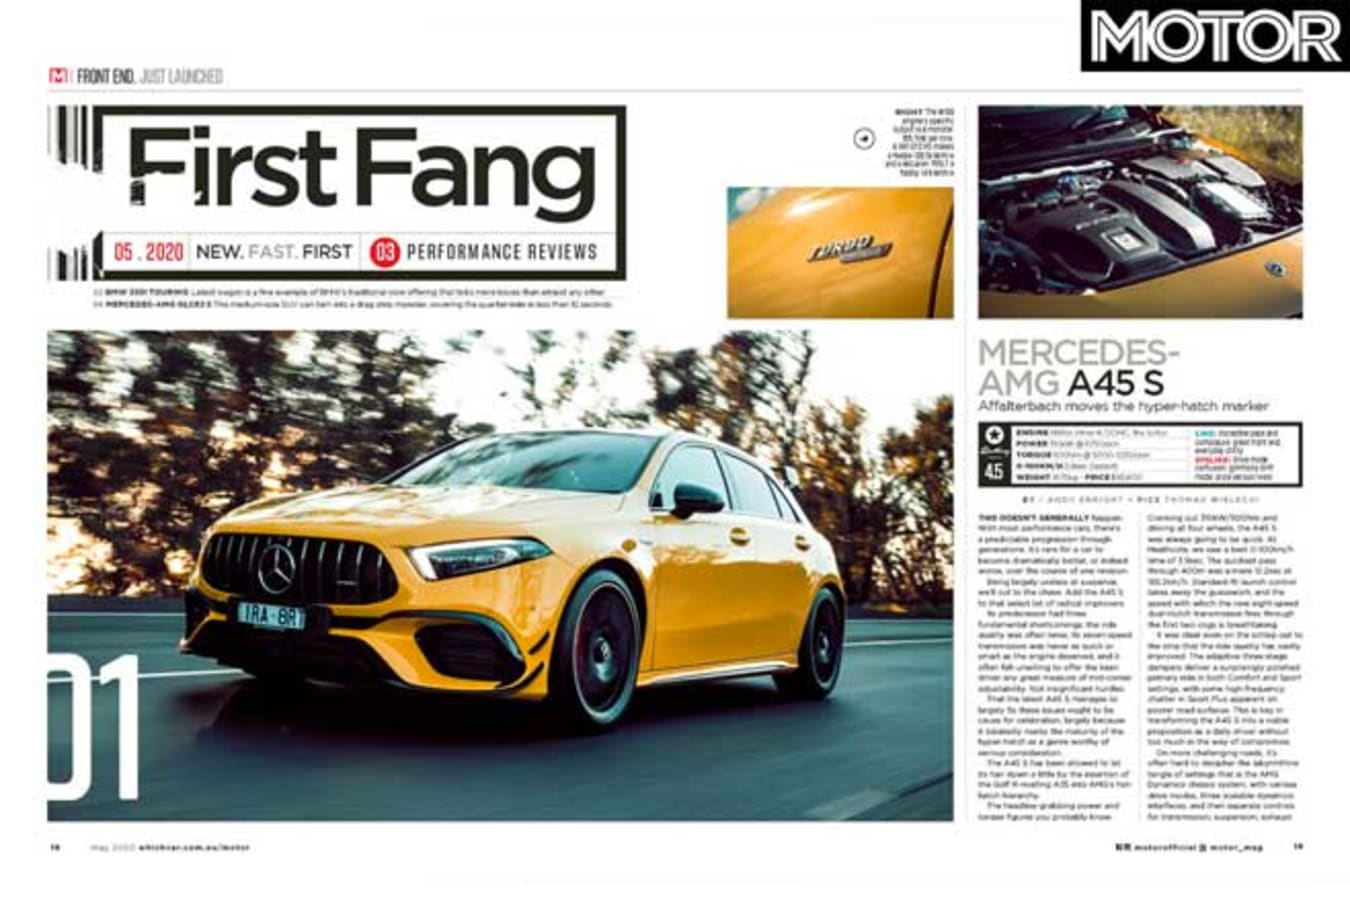 MOTOR Magazine May 2020 Issue First Drive Jpg